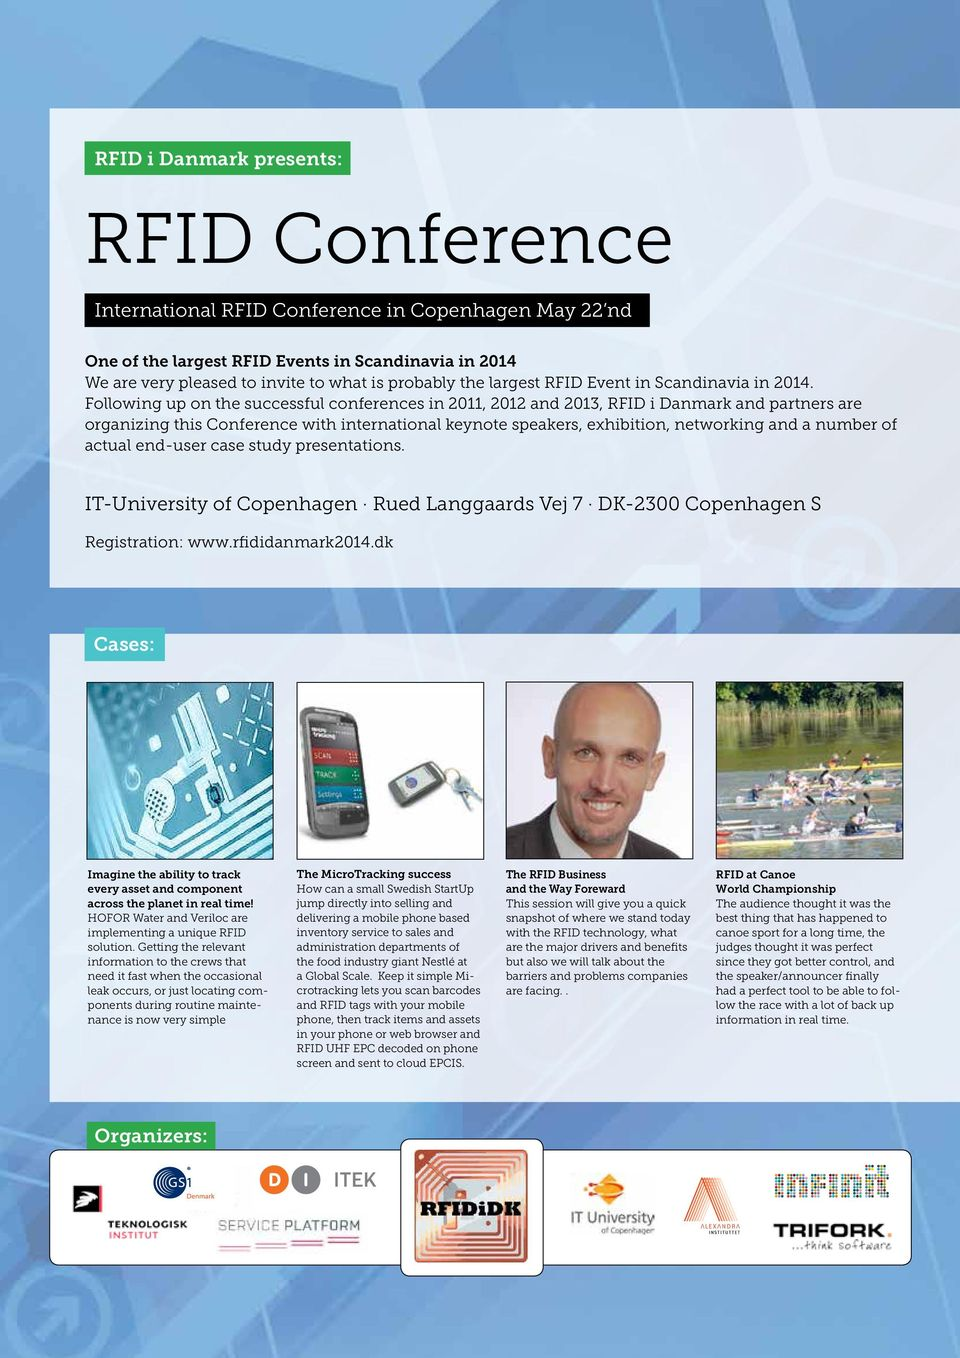 Following up on the successful conferences in 2011, 2012 and 2013, RFID i Danmark and partners are organizing this Conference with international keynote speakers, exhibition, networking and a number